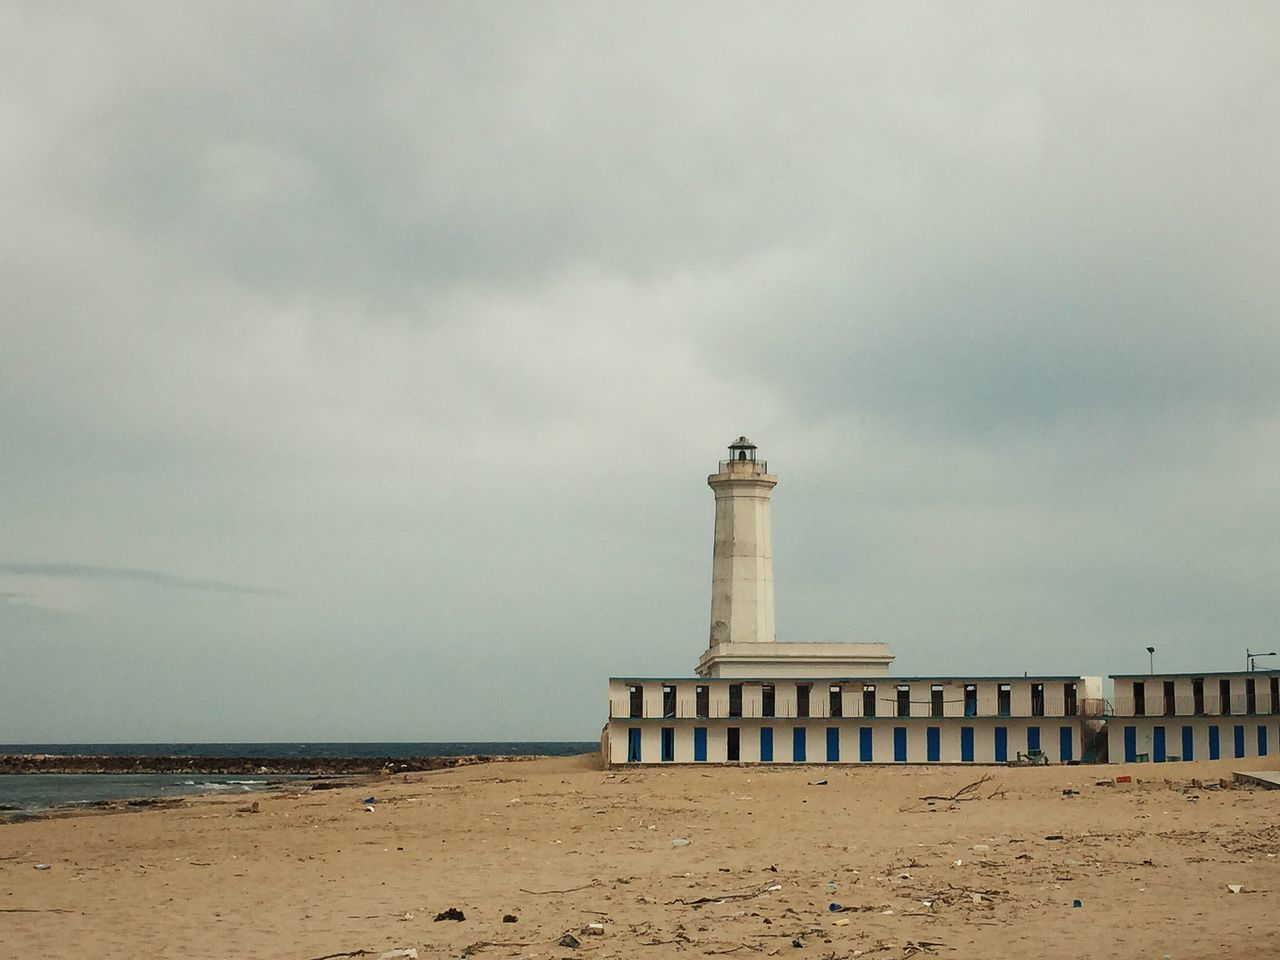 Beautiful stock photos of lighthouse, Architecture, Beach, Built Structure, Calm